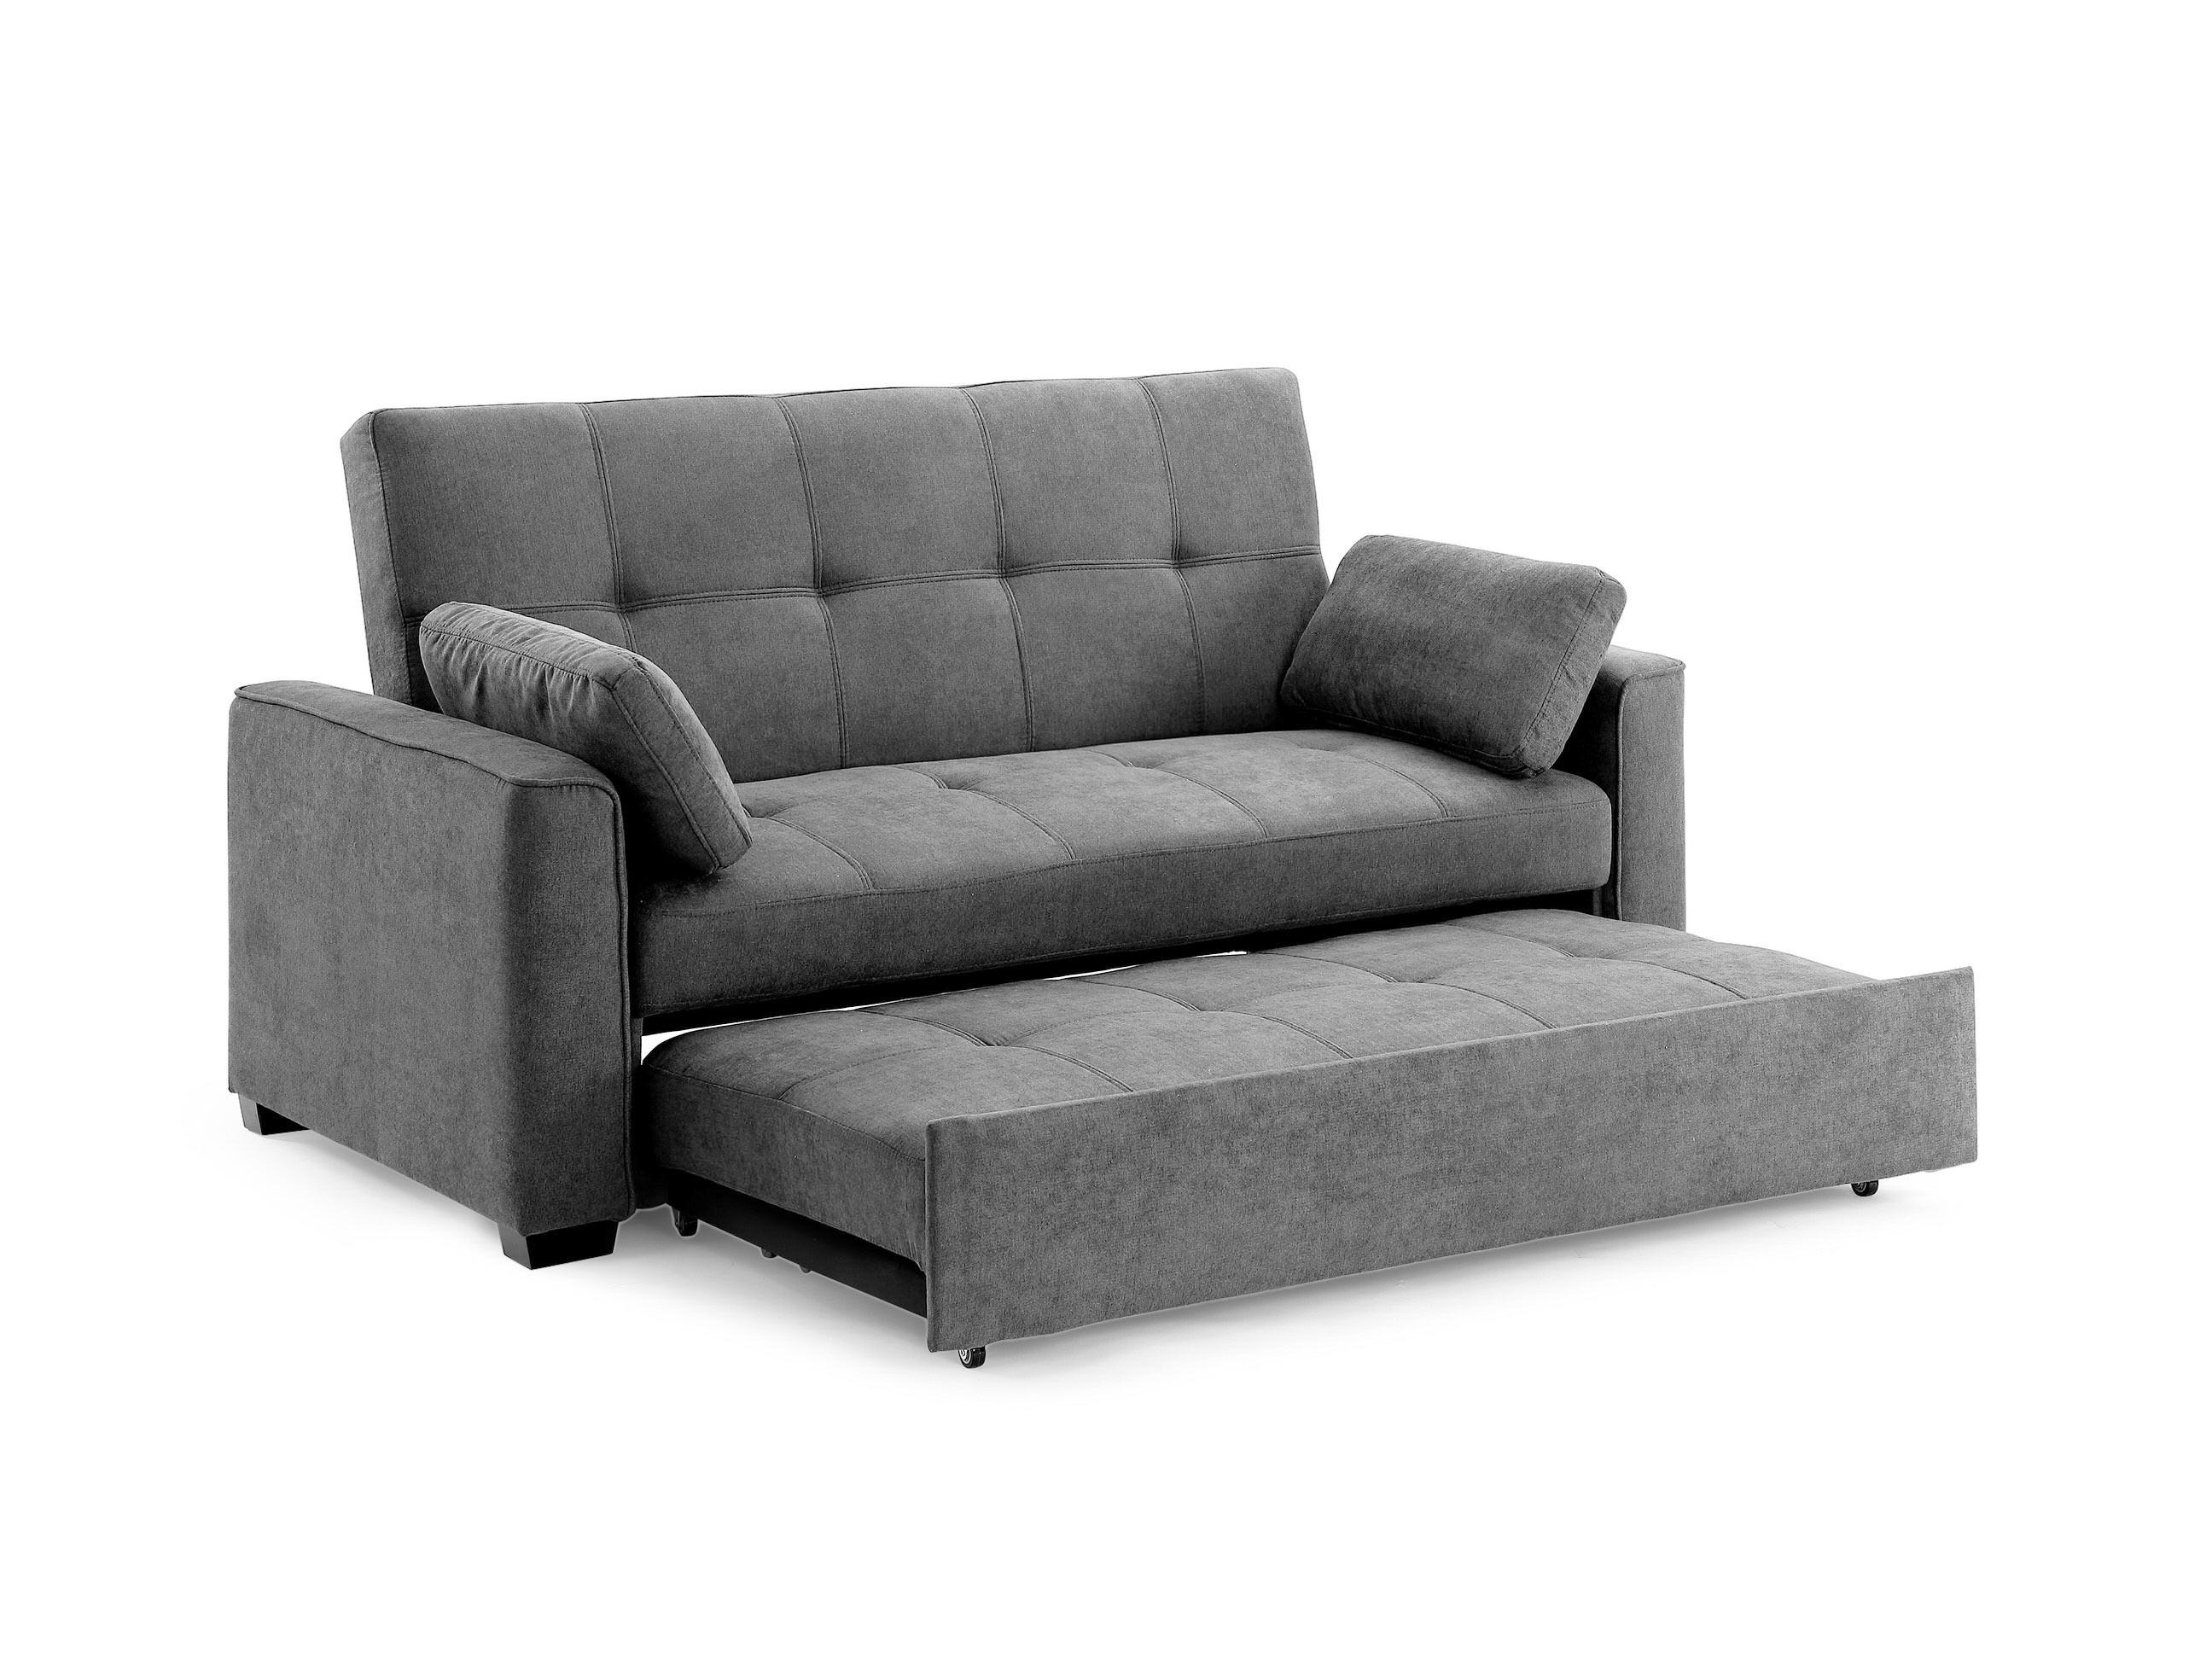 living loveseat another and cozy fabulous comfortable for color of with design room furniture futon ideas interior futons